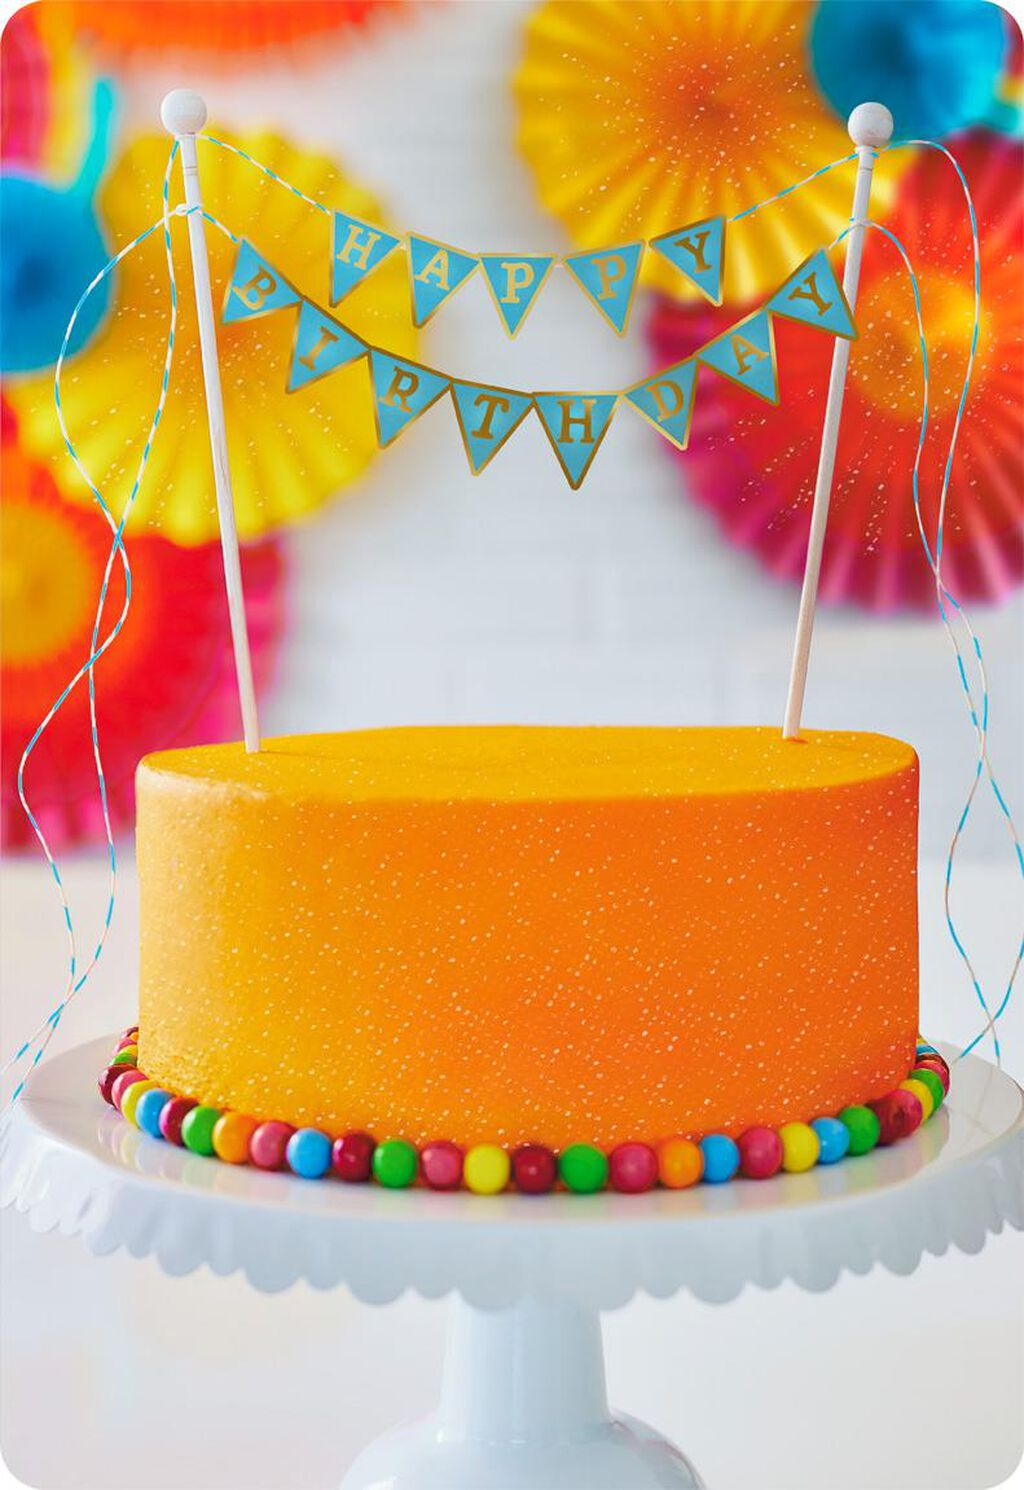 Happy Birthday Cake Jumbo Card 1625